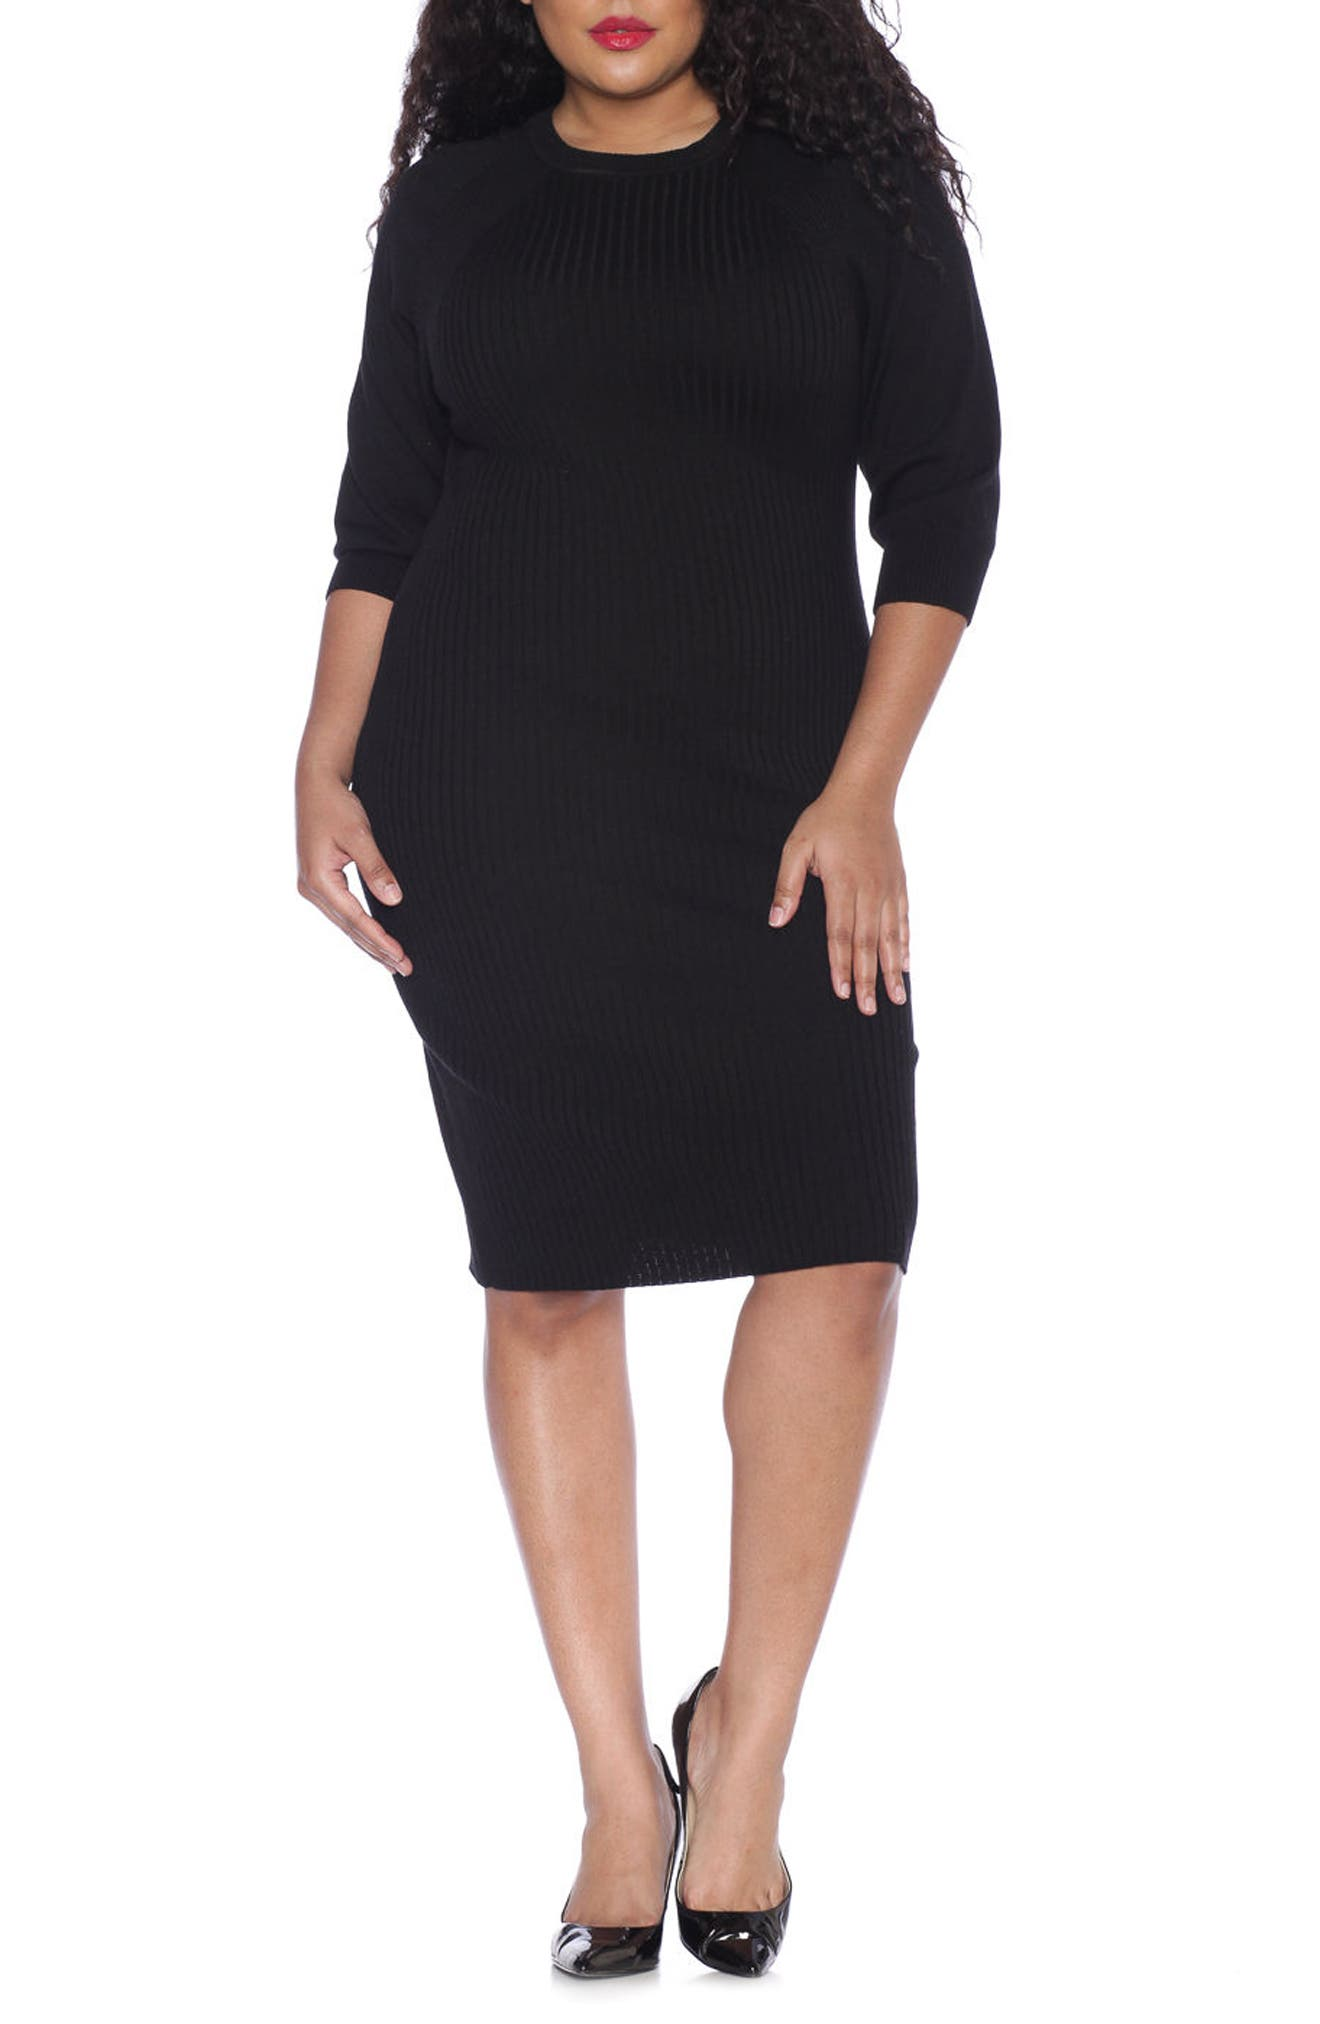 Alternate Image 1 Selected - SLINK Jeans Ribbed Sweater Dress (Plus Size)